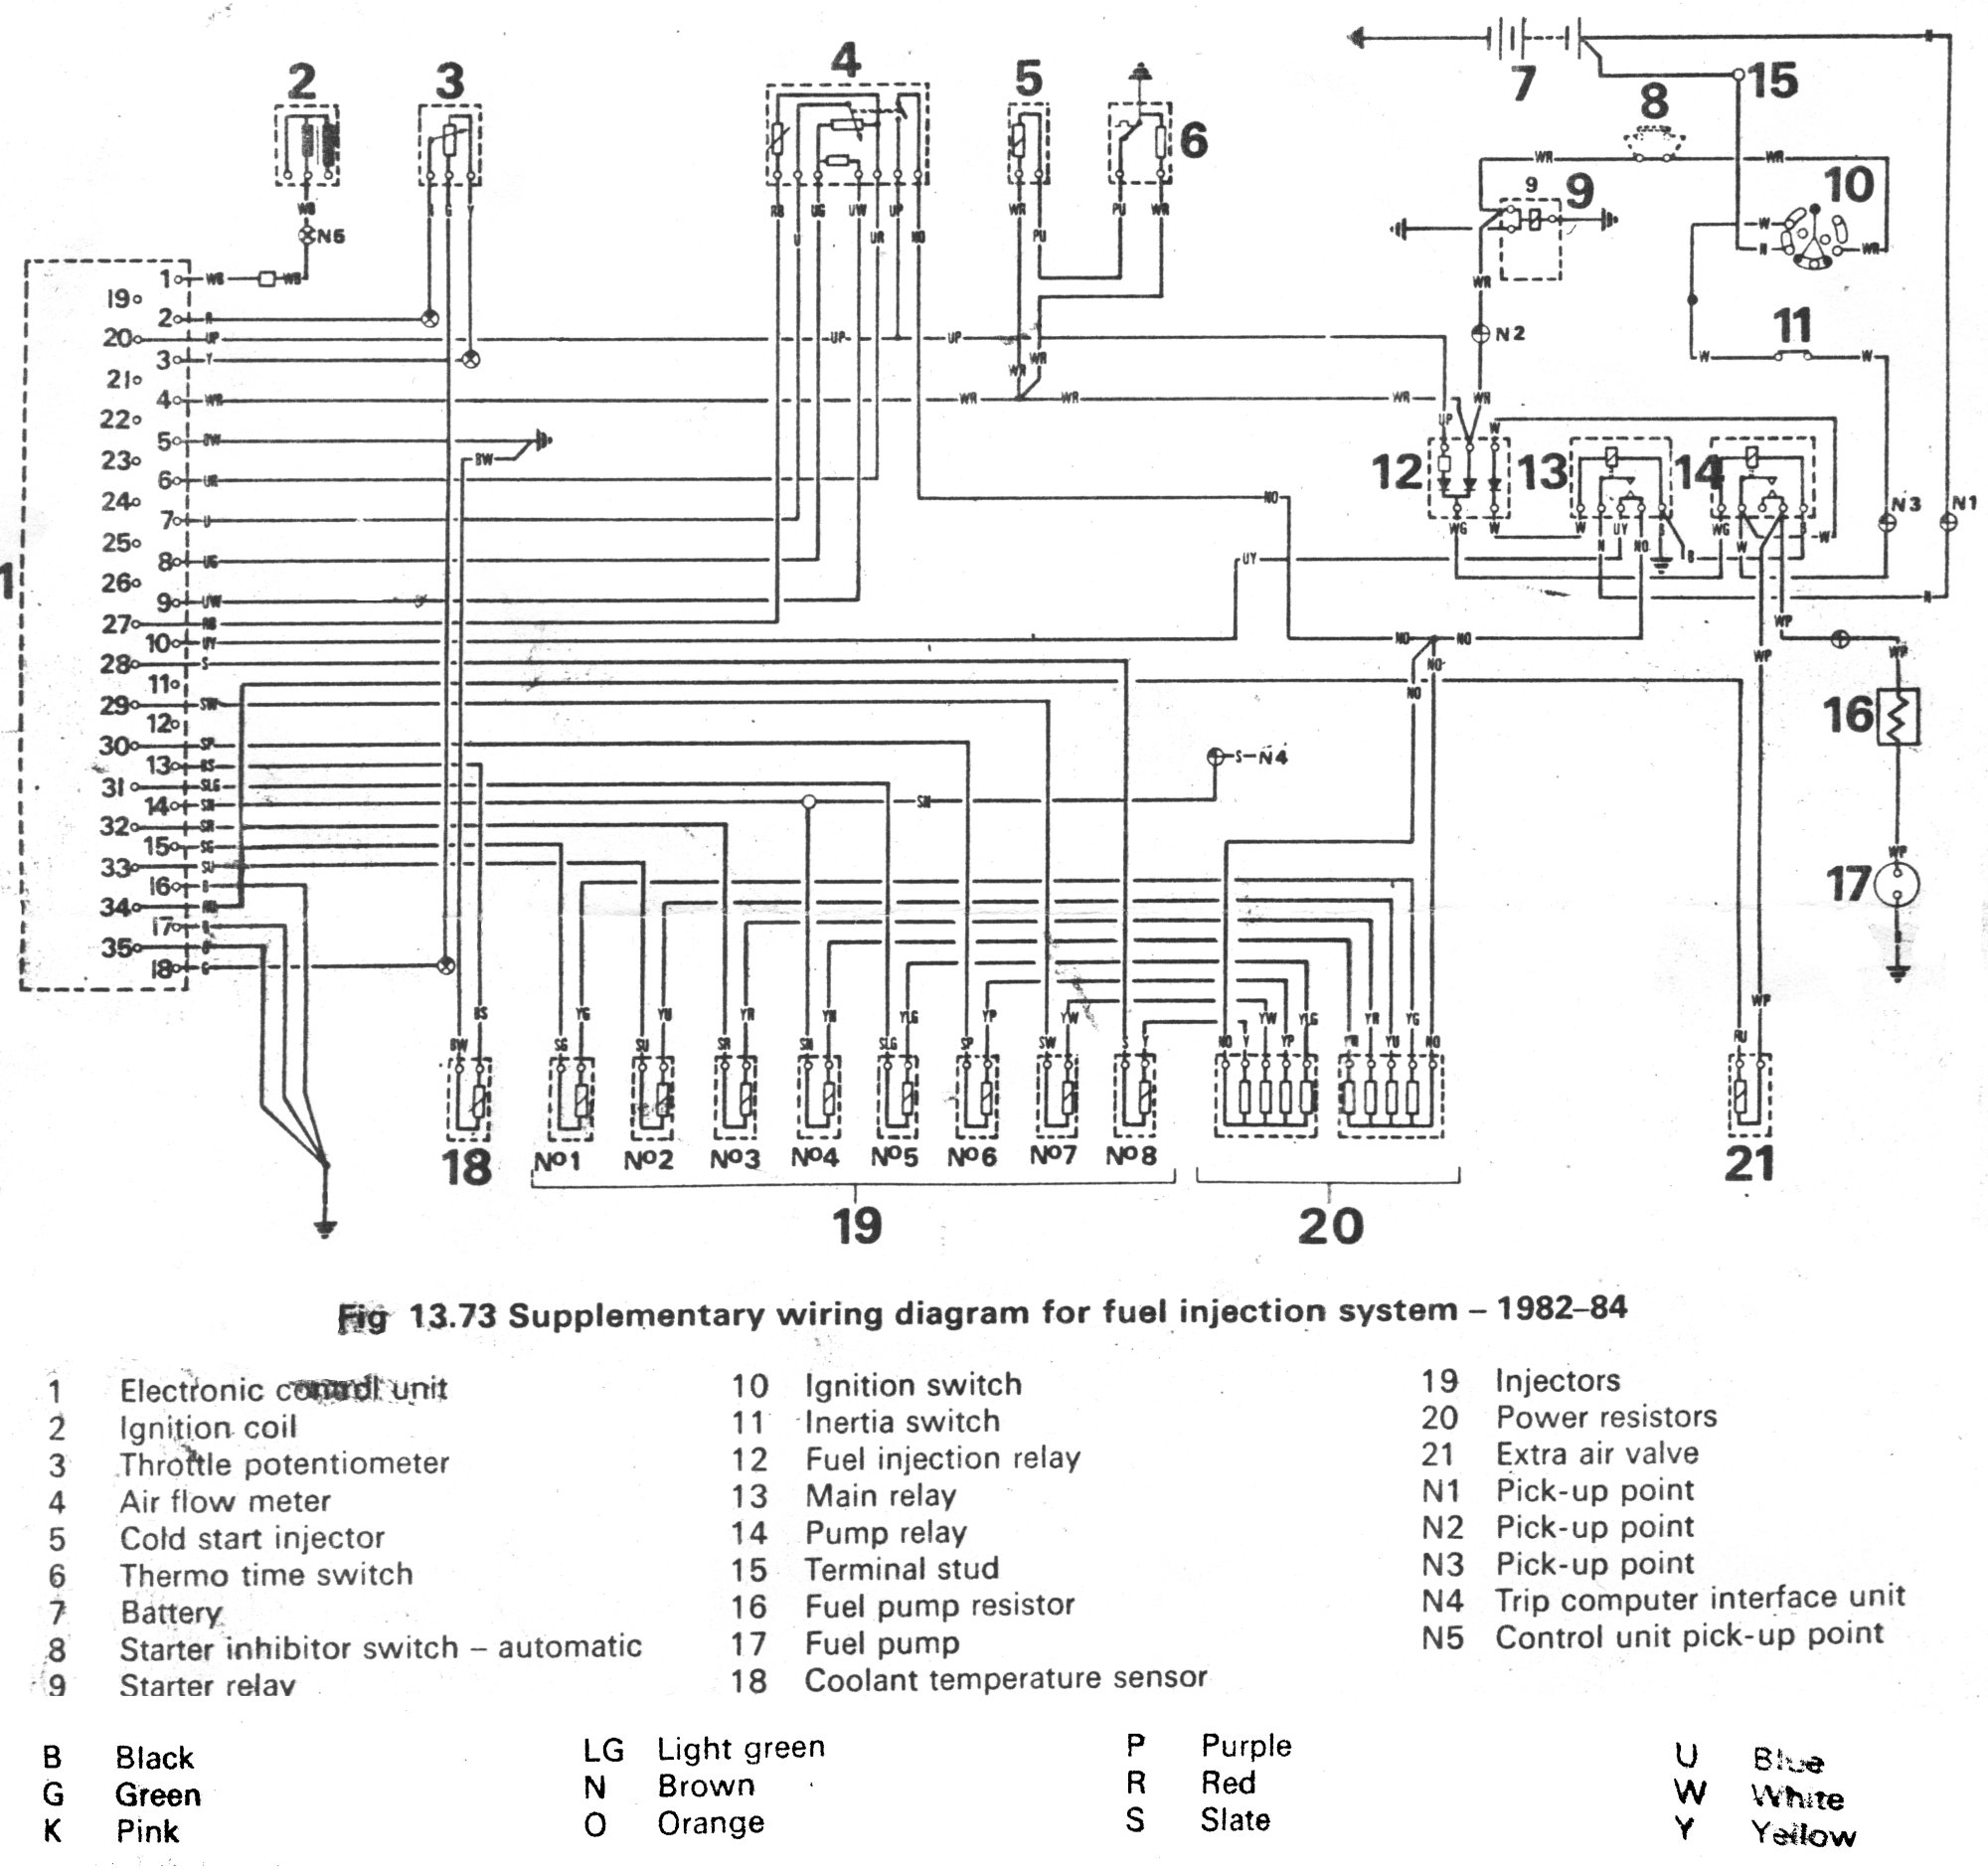 lucas_efi_1982_1984 v8 flapper efi wiring diagram please!!! discovery forum lr4x4 1937 Chevy Panel Truck at mifinder.co